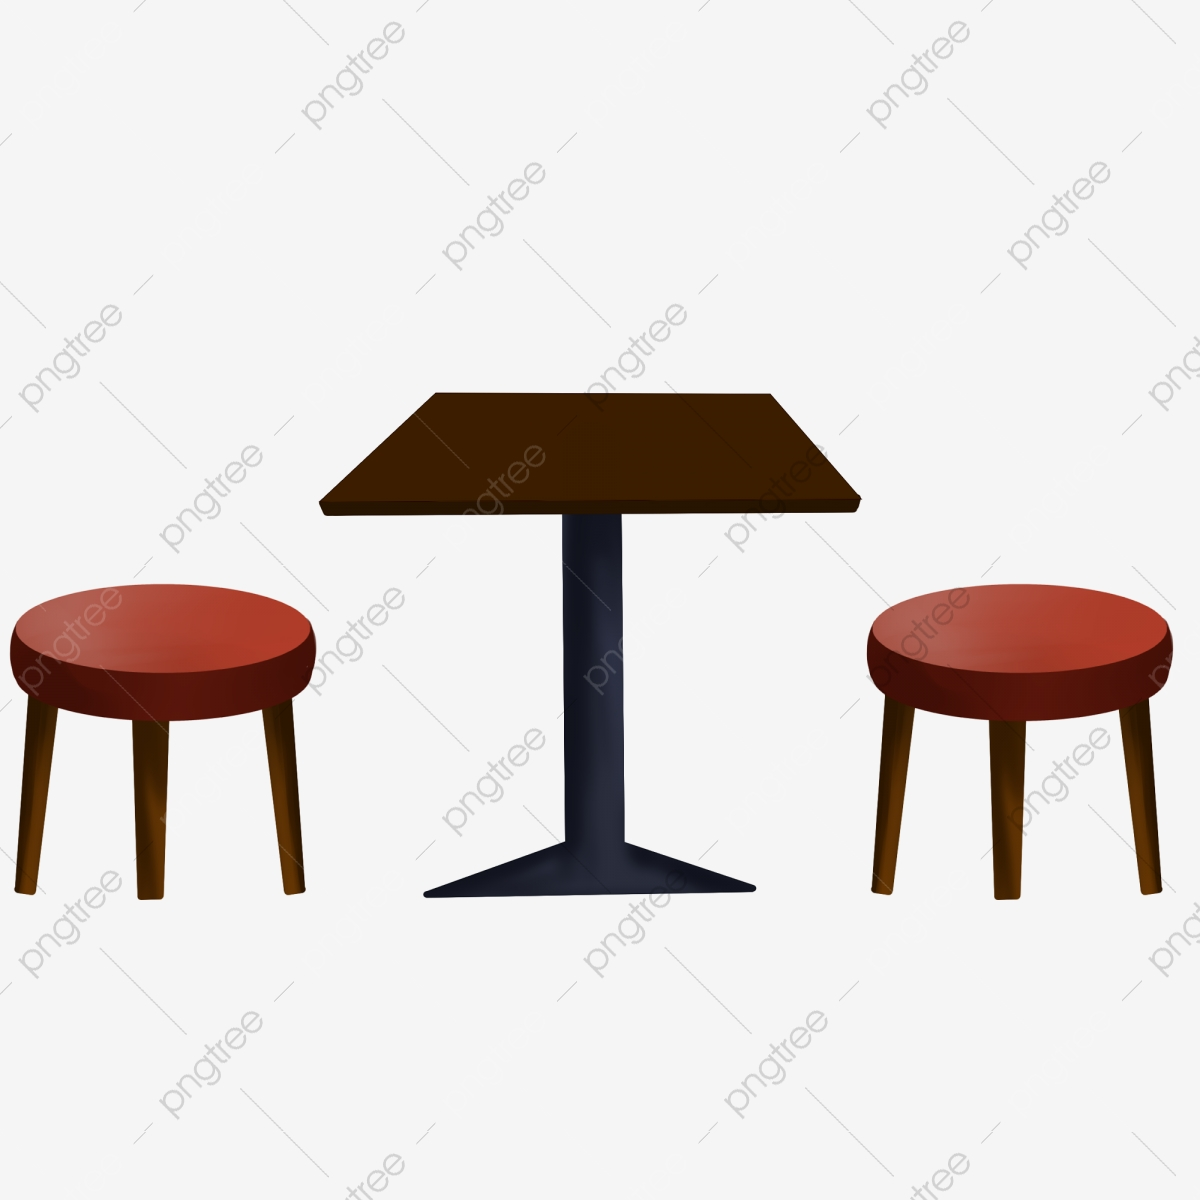 Super Restaurant Table Stool Simple Furniture Dining Table Gmtry Best Dining Table And Chair Ideas Images Gmtryco